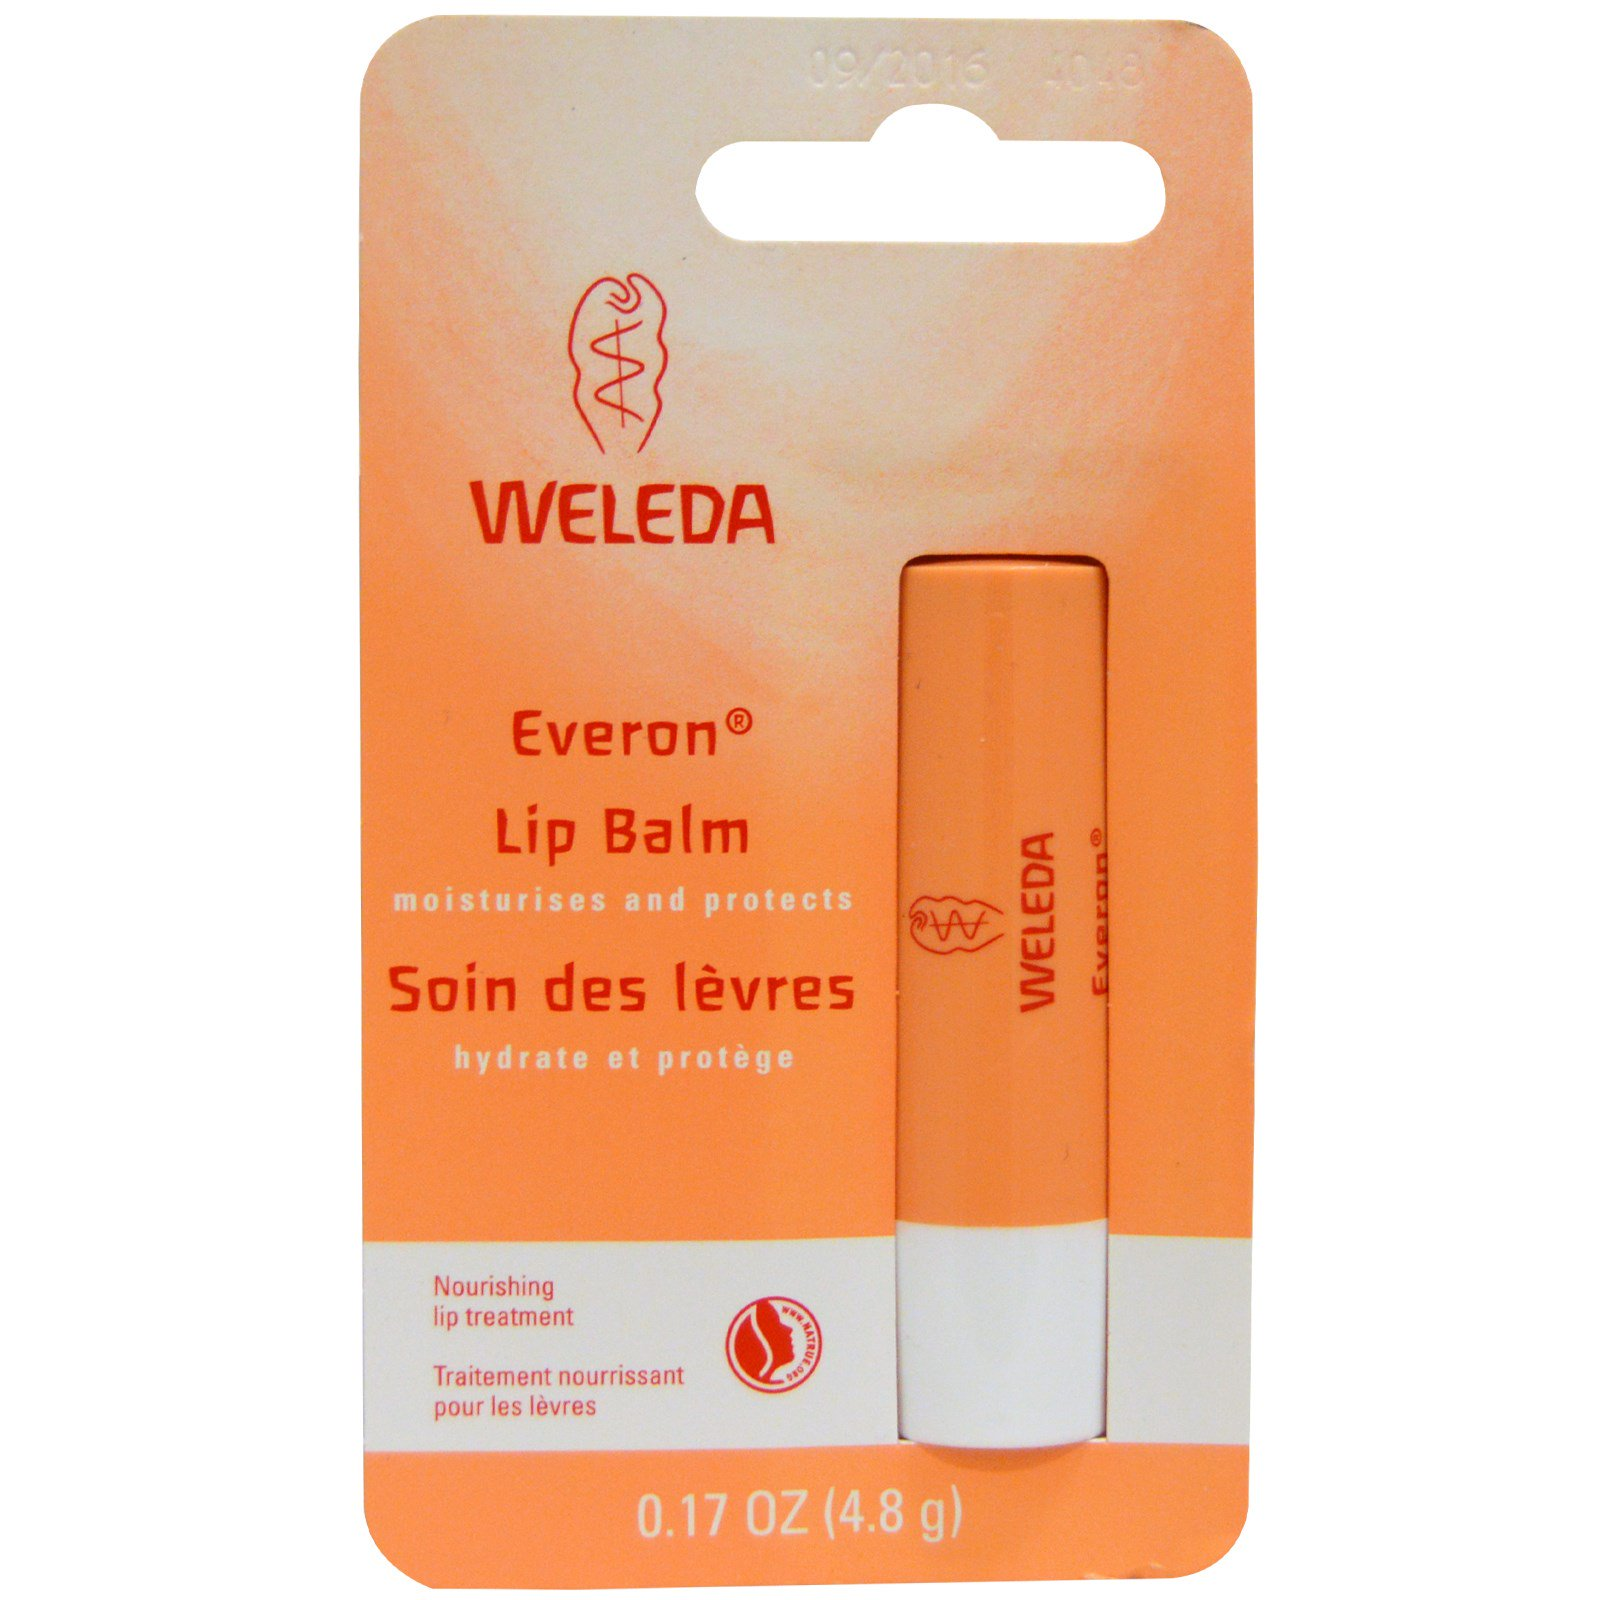 Weleda Everon Lip Balm, 0.17 Ounces Organic Lip + Body Balm Unscented - 0.6 oz. by Sustain (pack of 3)